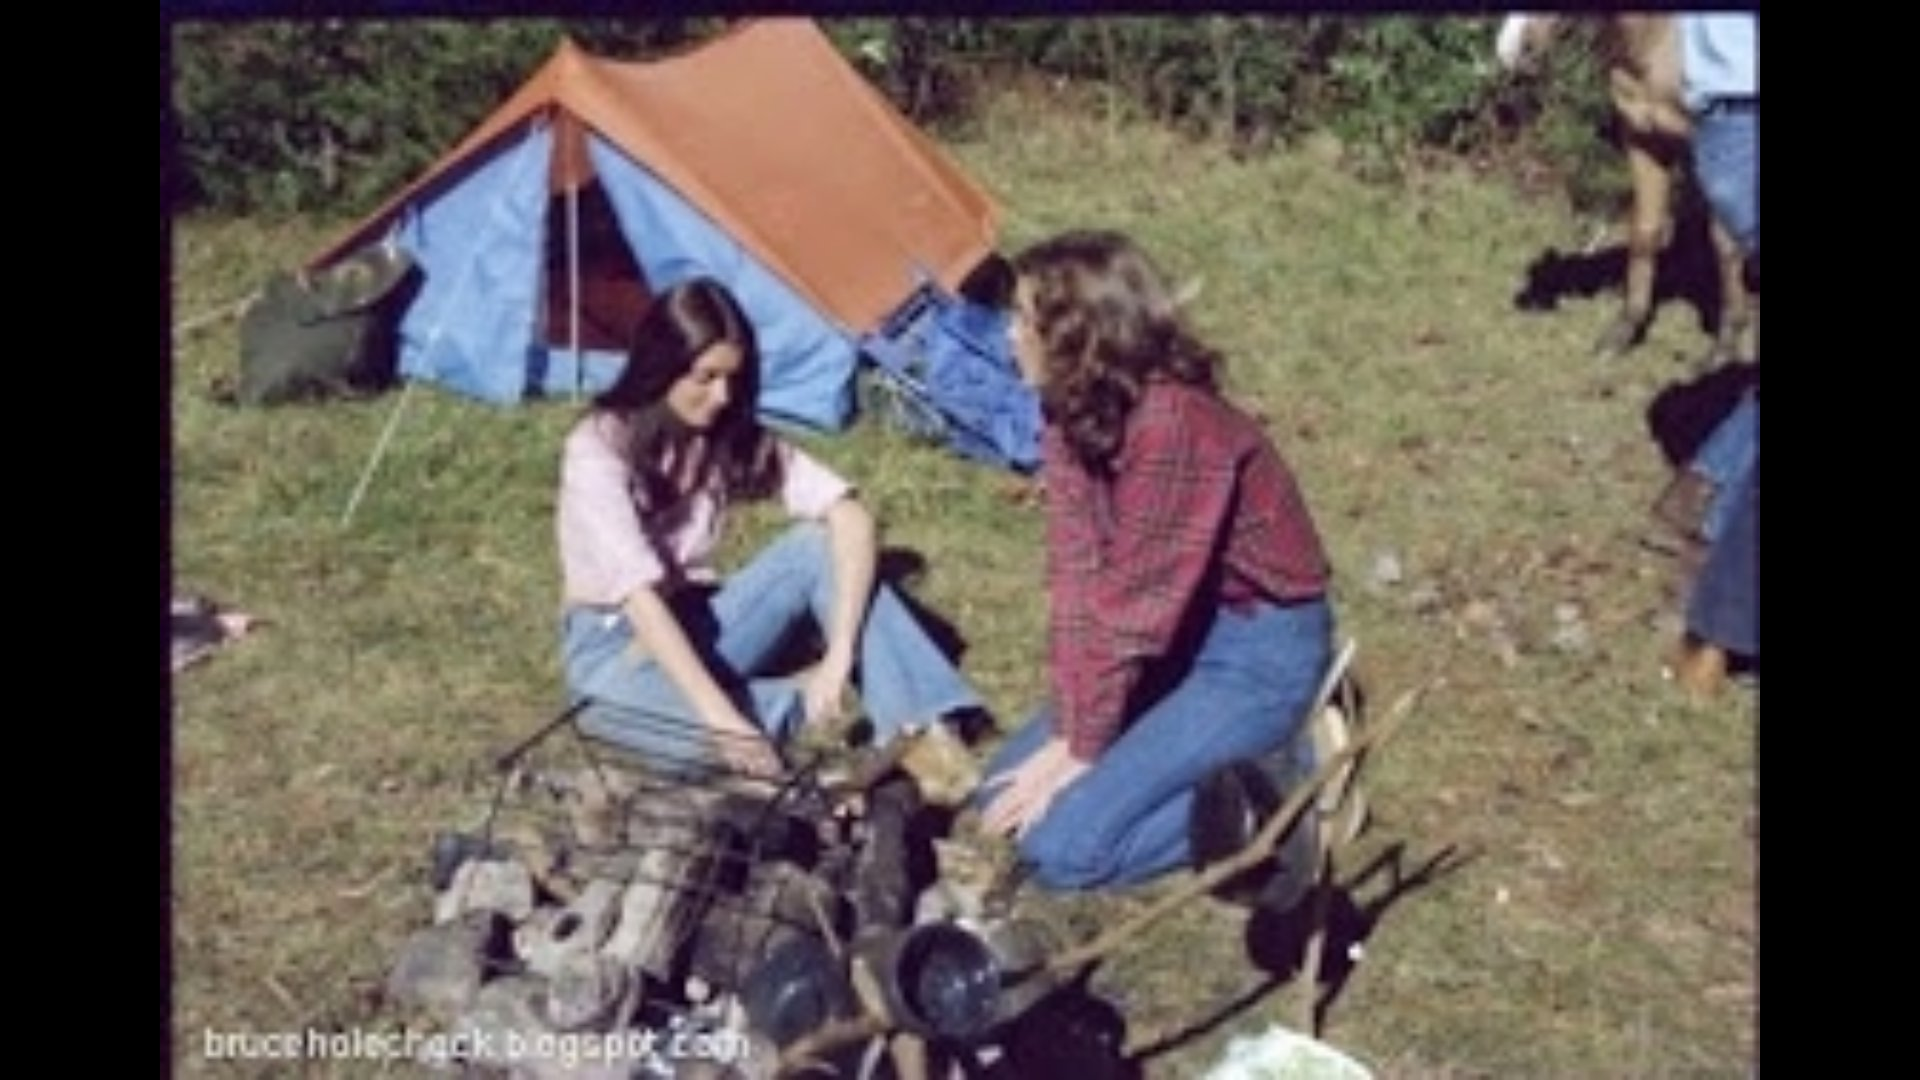 Mary Ann Hearn and Kathy Rickman in Grizzly (1976)